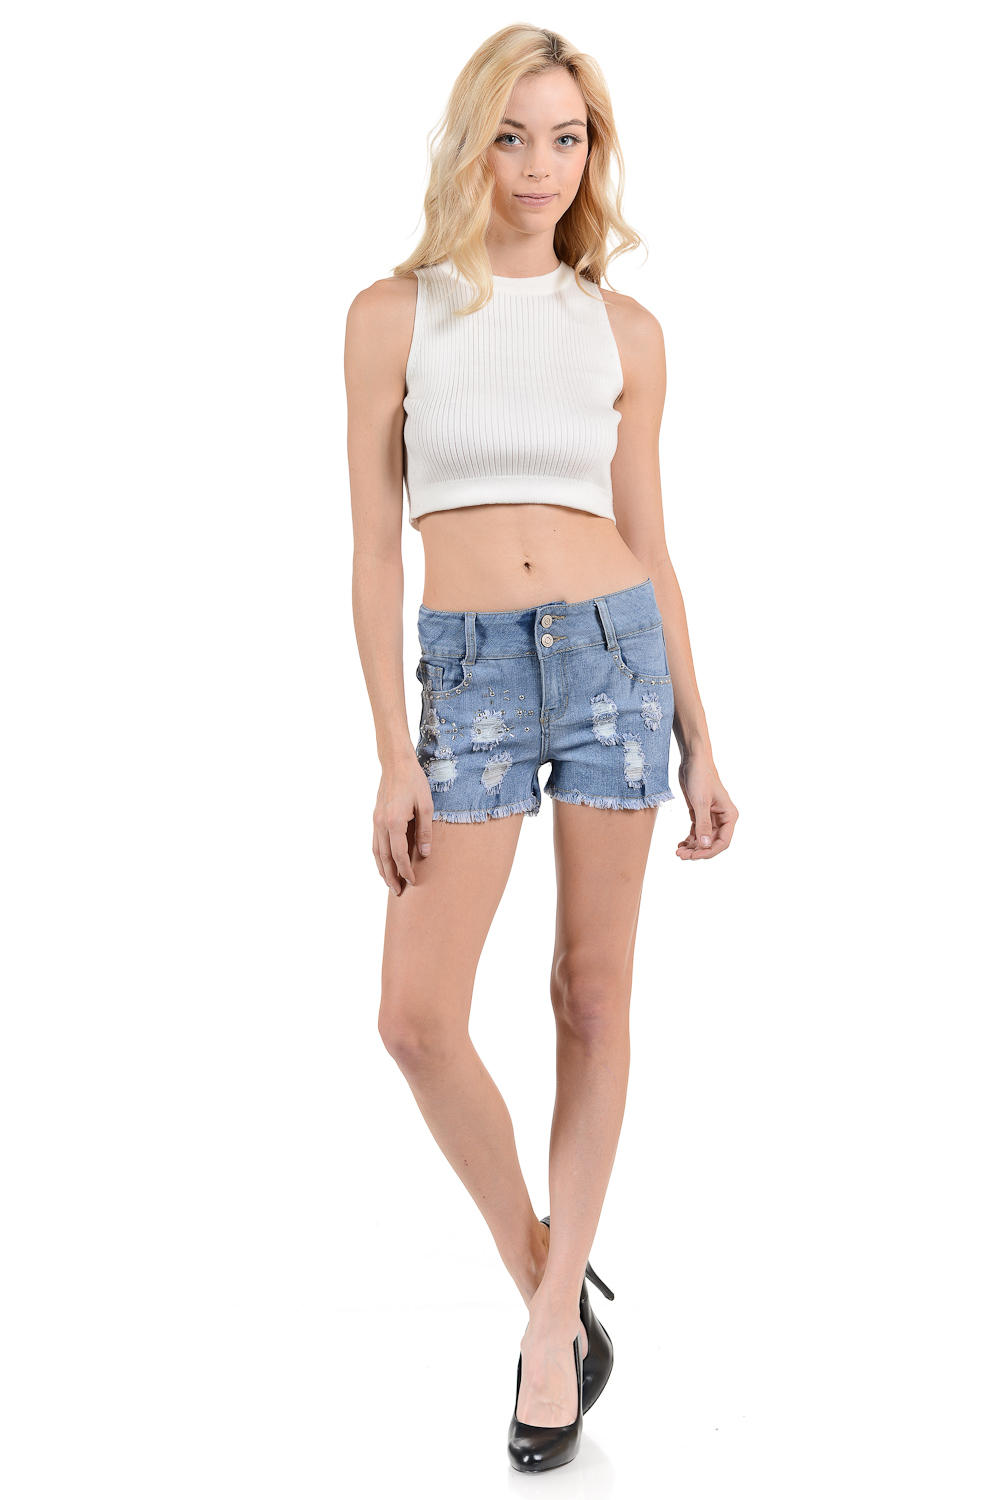 Sweet Look Women's Shorts - Style N630H-R